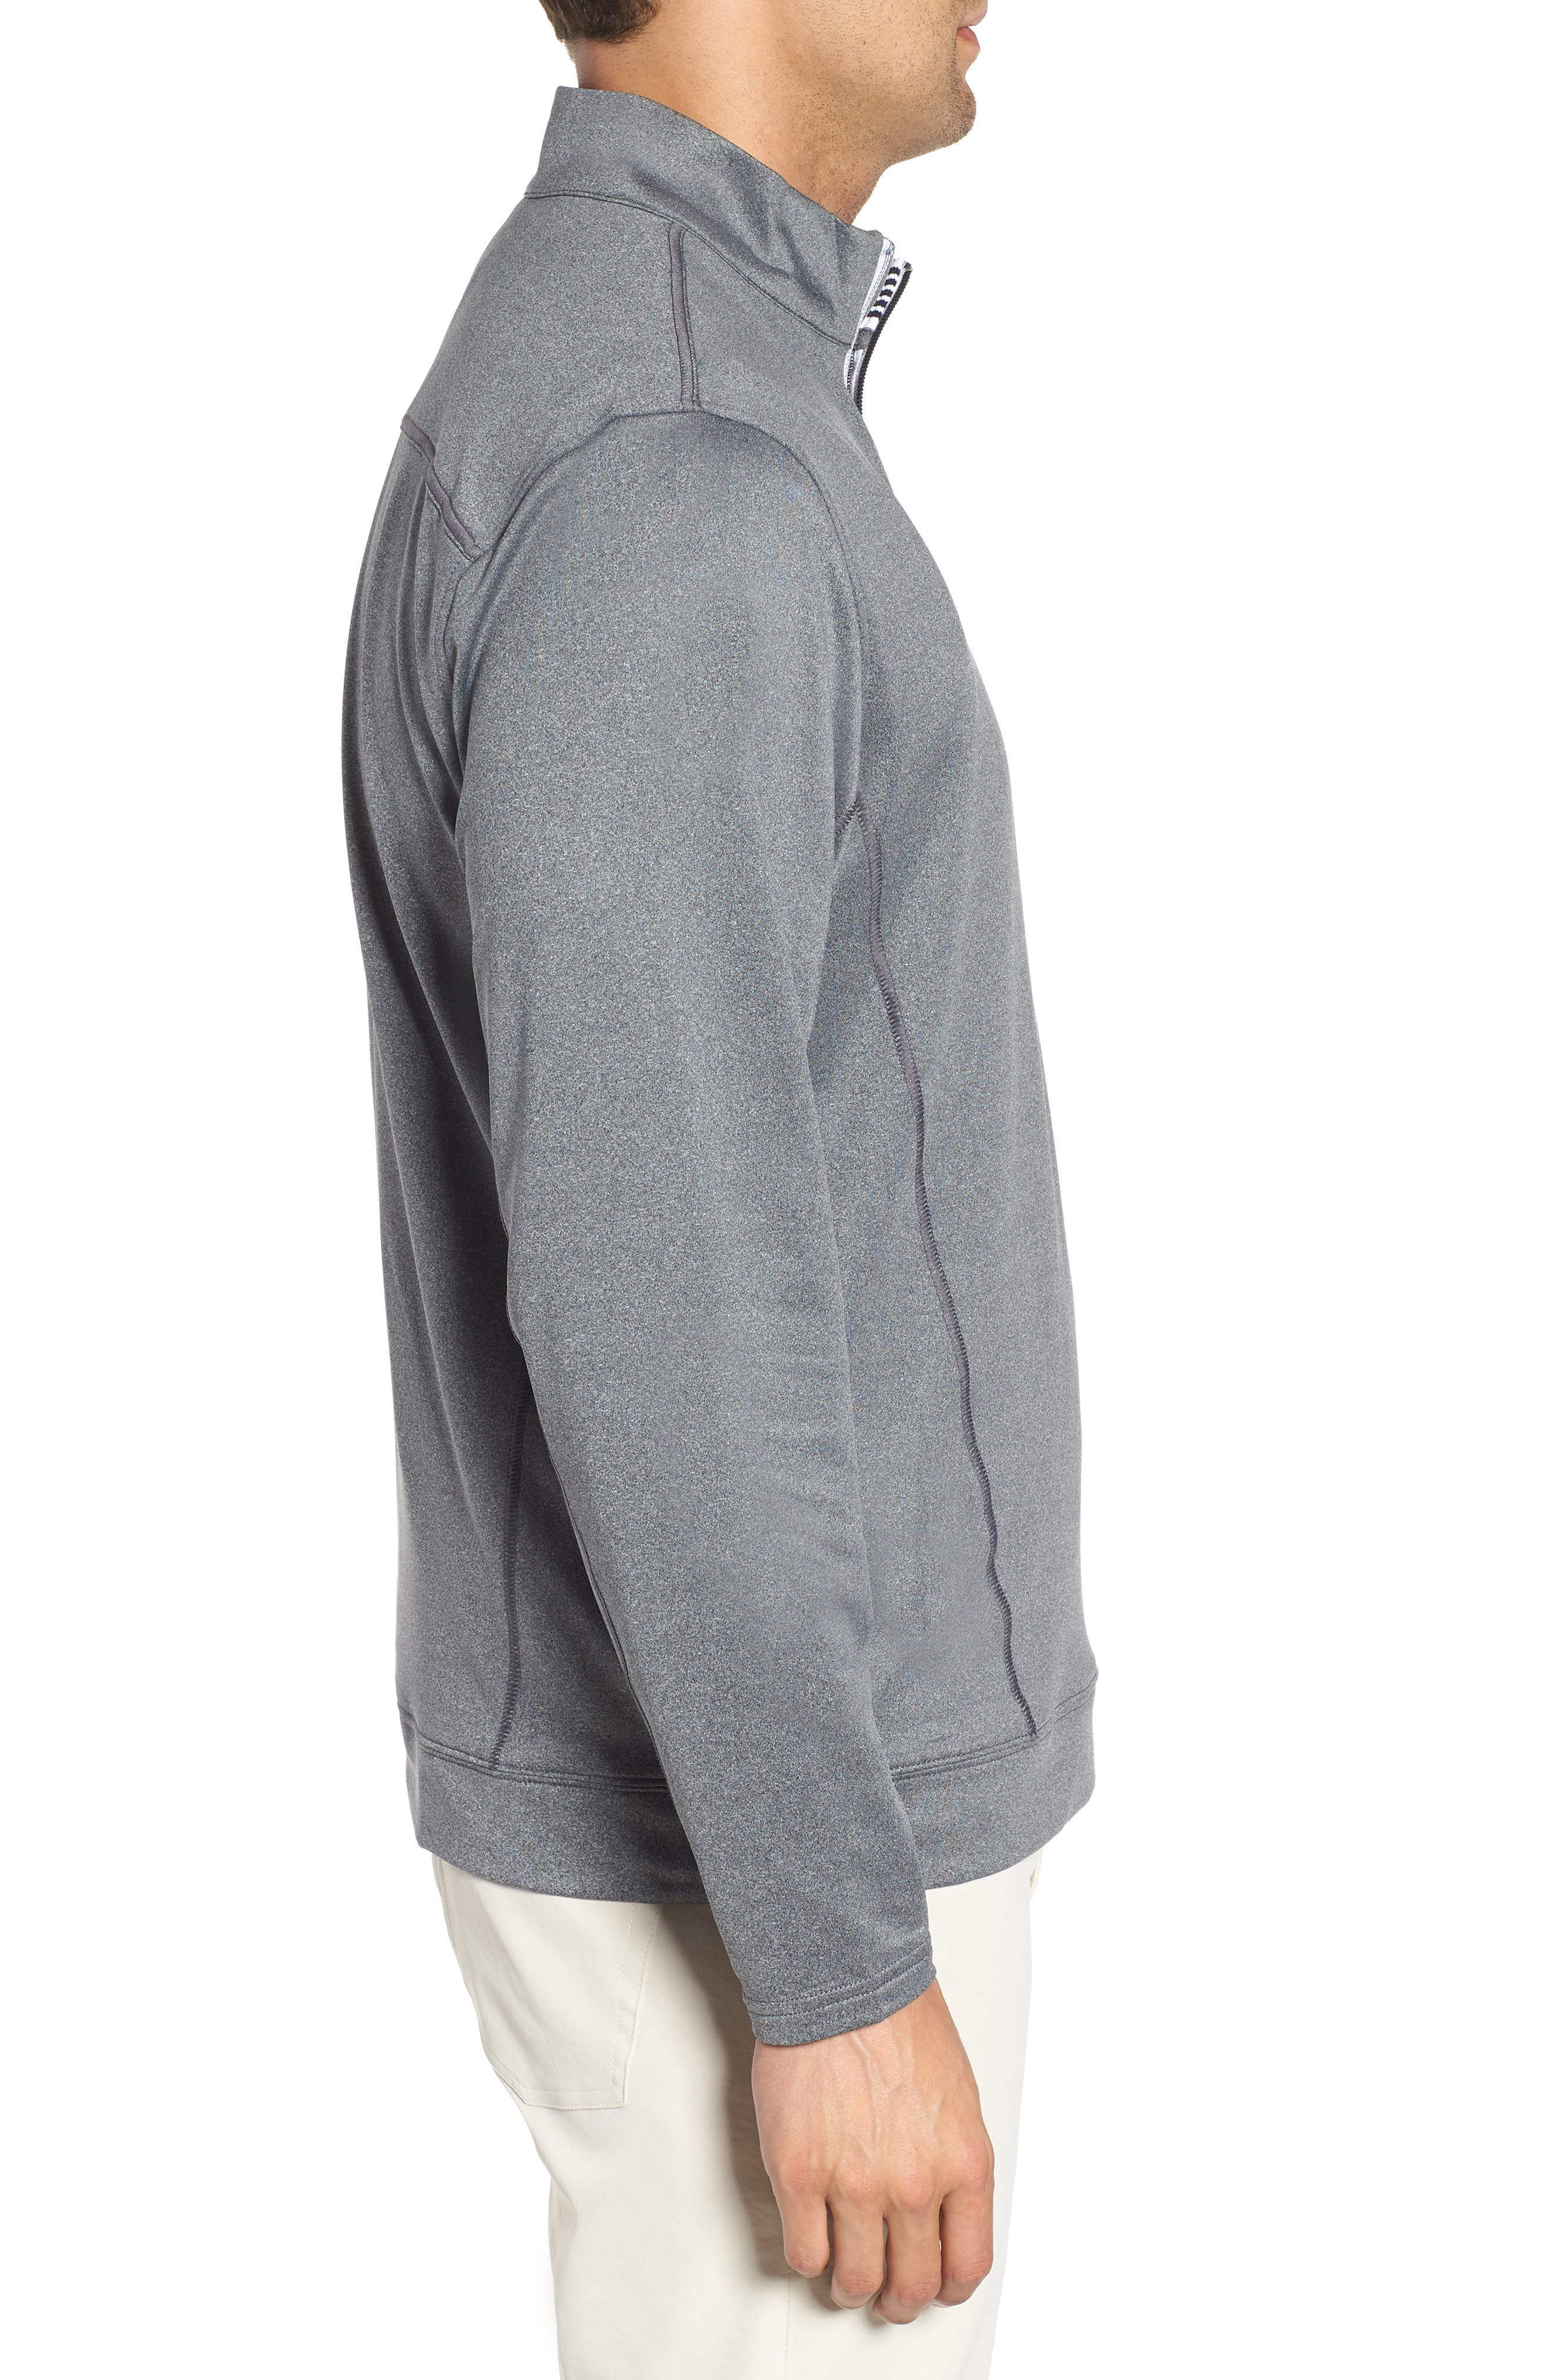 Endurance Pittsburgh Steelers Regular Fit Pullover,                             Alternate thumbnail 3, color,                             CHARCOAL HEATHER